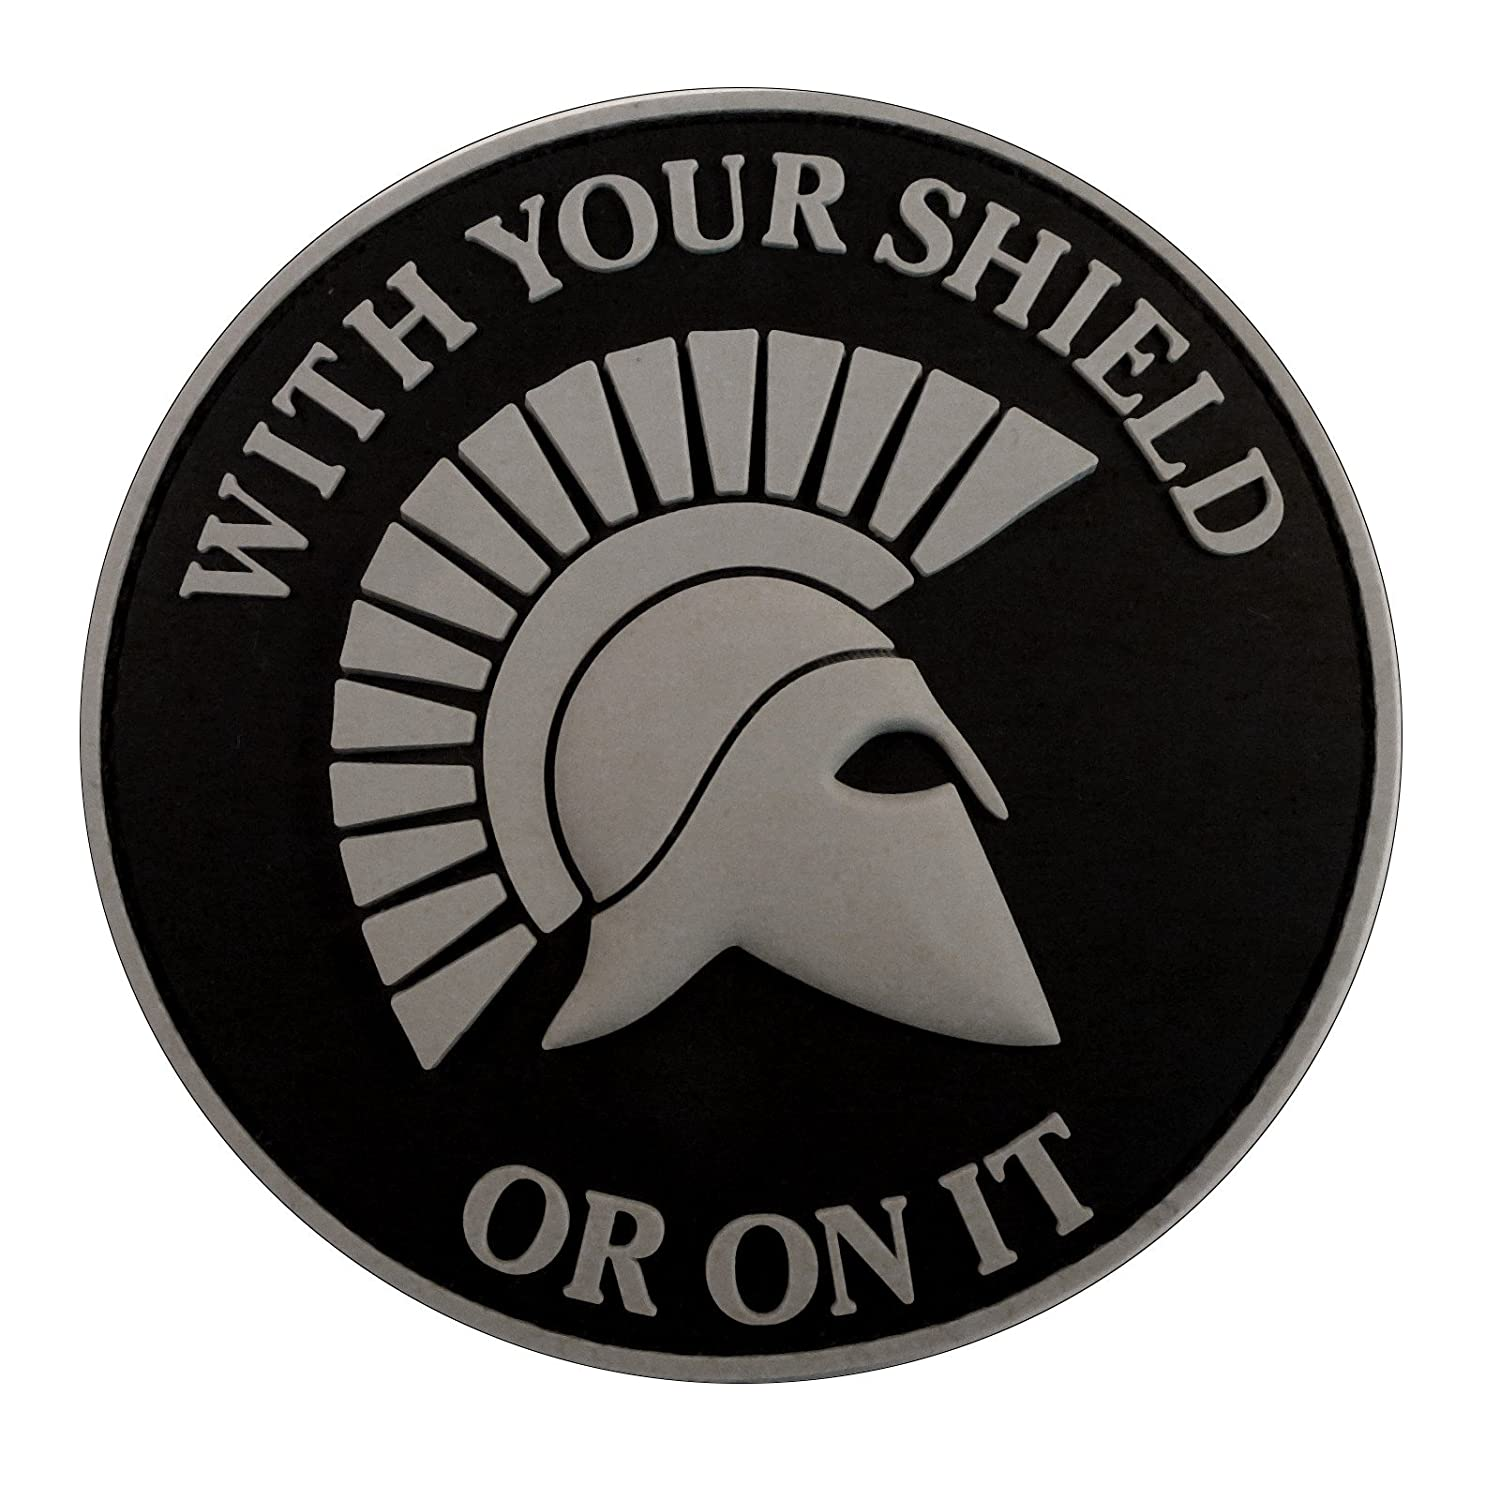 ACU Gray Spartan Helmet WITH YOUR SHIELD OR ON IT PVC 3D Gomma Hook-and-Loop Toppa Patch 2AFTER1 P.1711.2.V